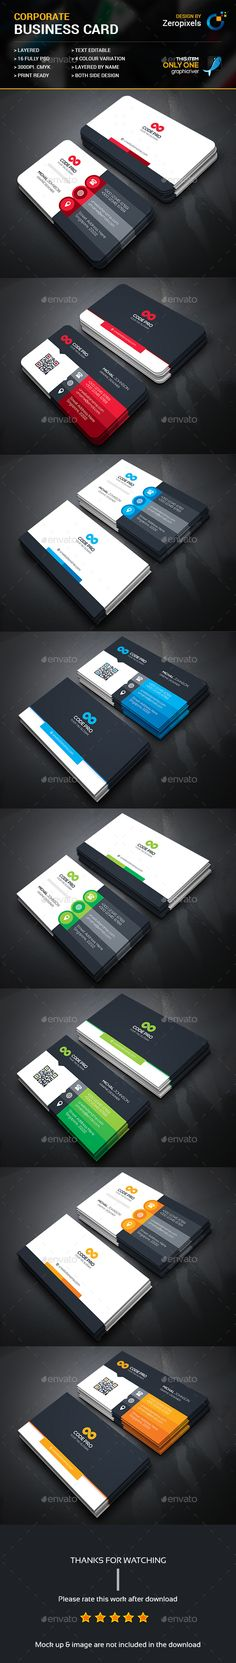 Corporate Business Card Bundle — Photoshop PSD #logo #bundle • Available here → https://graphicriver.net/item/corporate-business-card-bundle/18038969?ref=pxcr